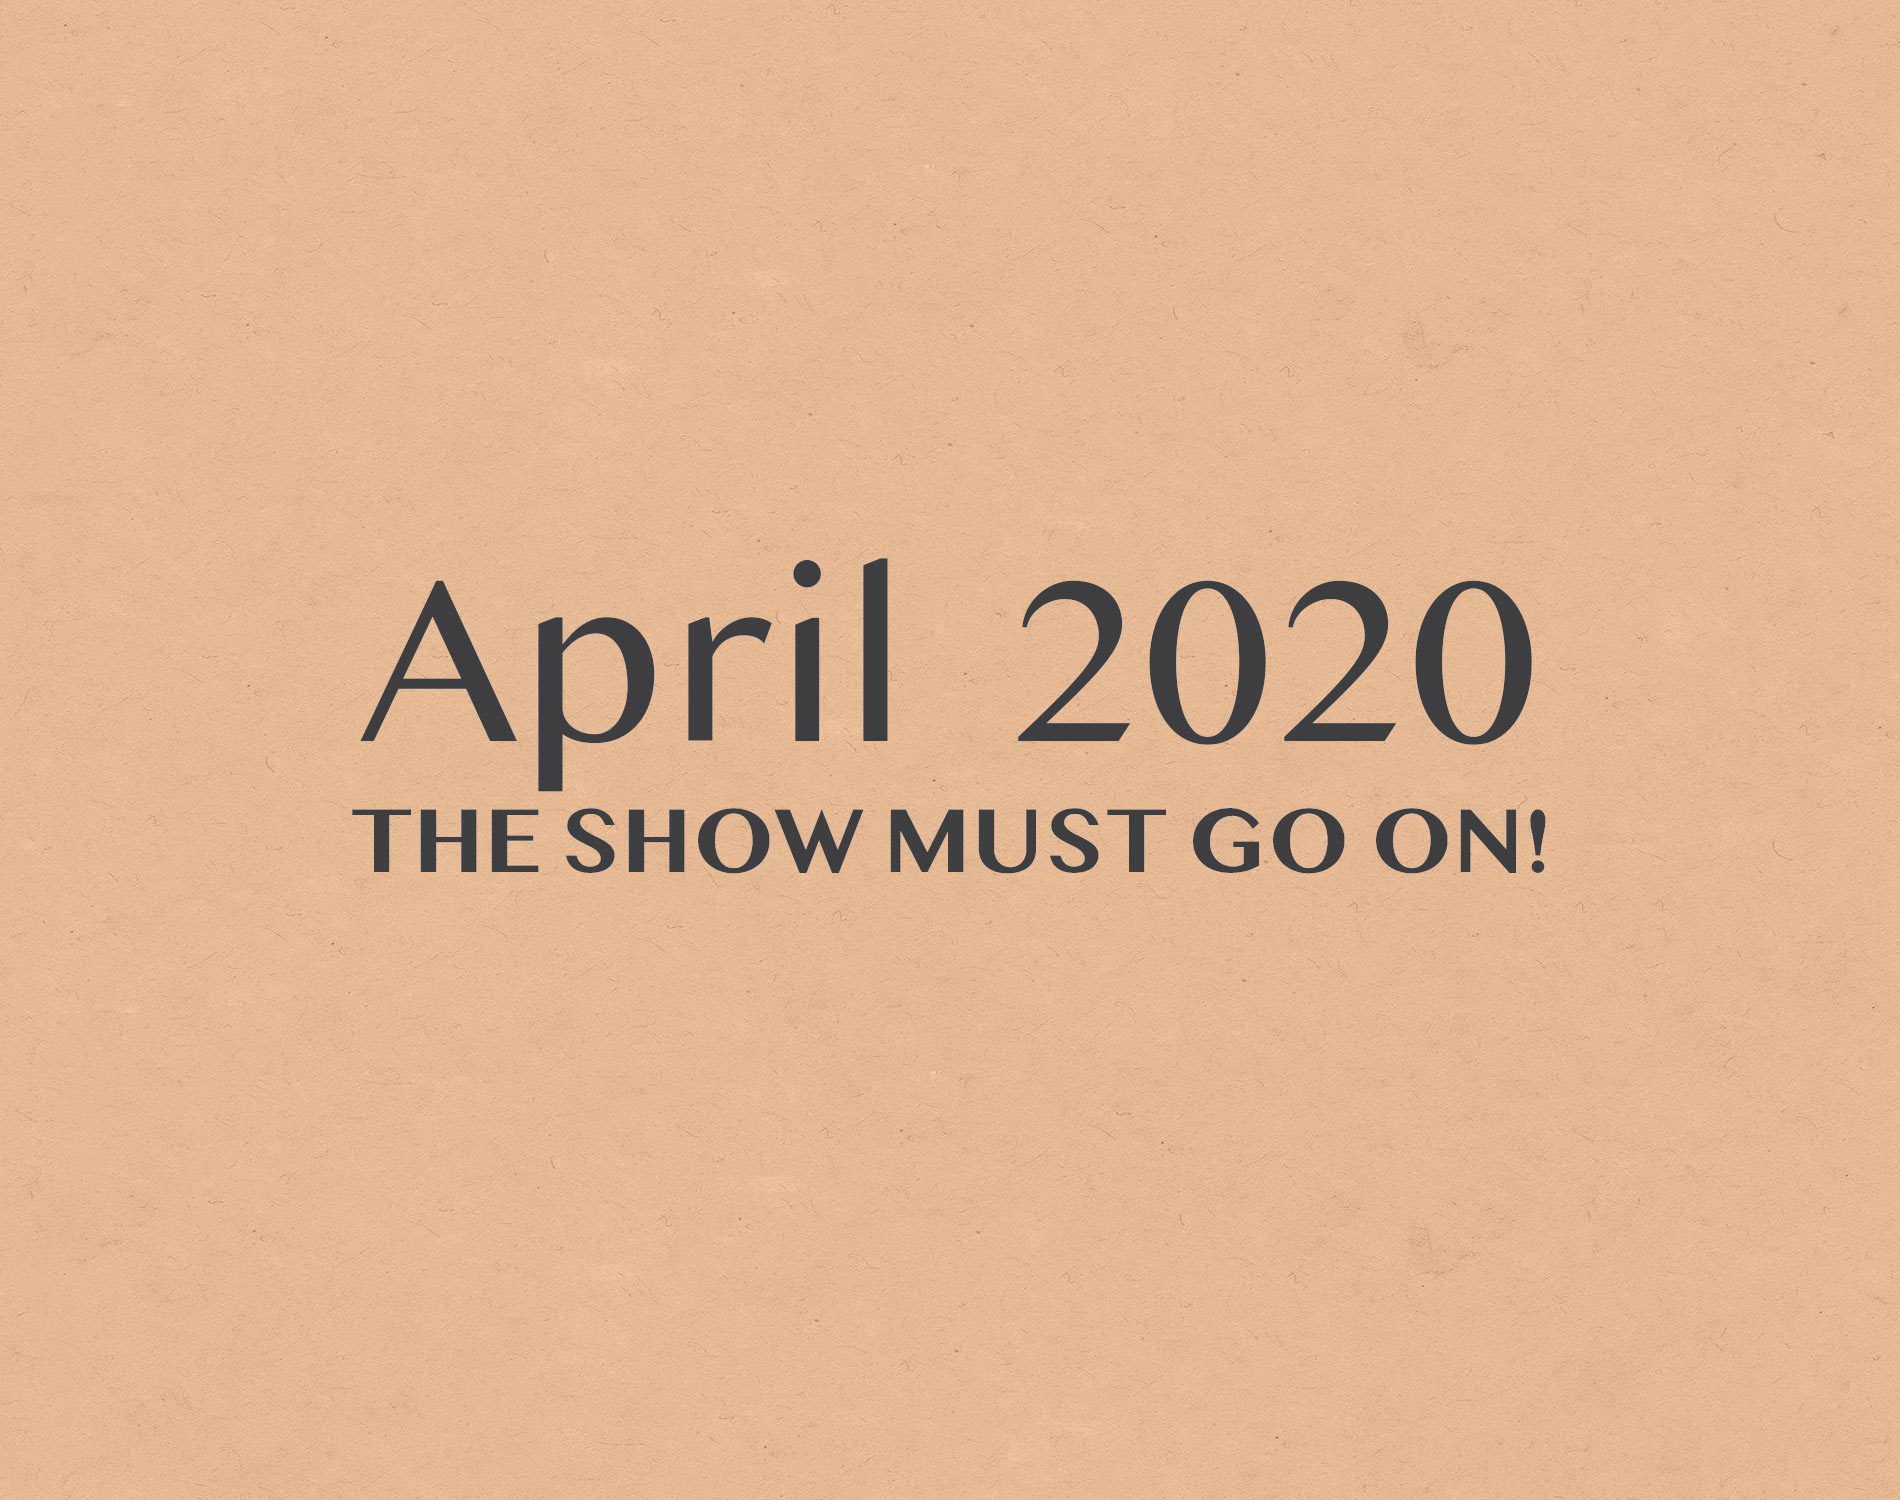 Abril 2020. The show must go on!